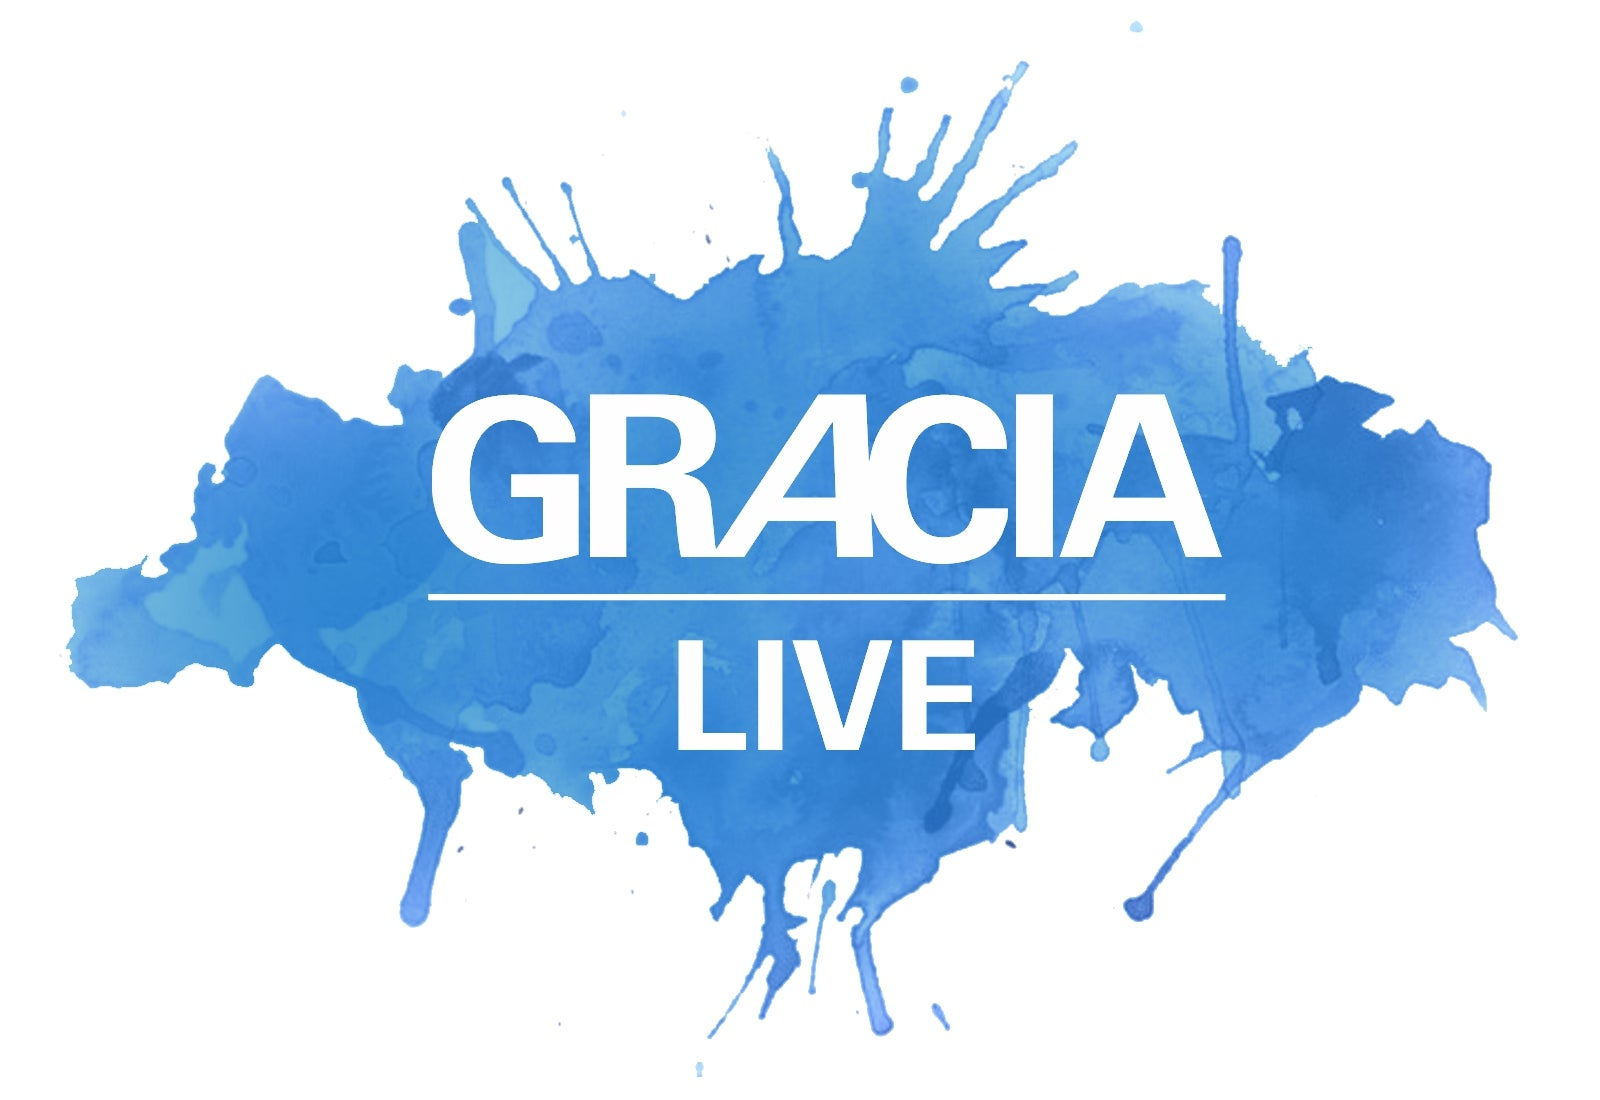 splash-logo-gracialive.jpg